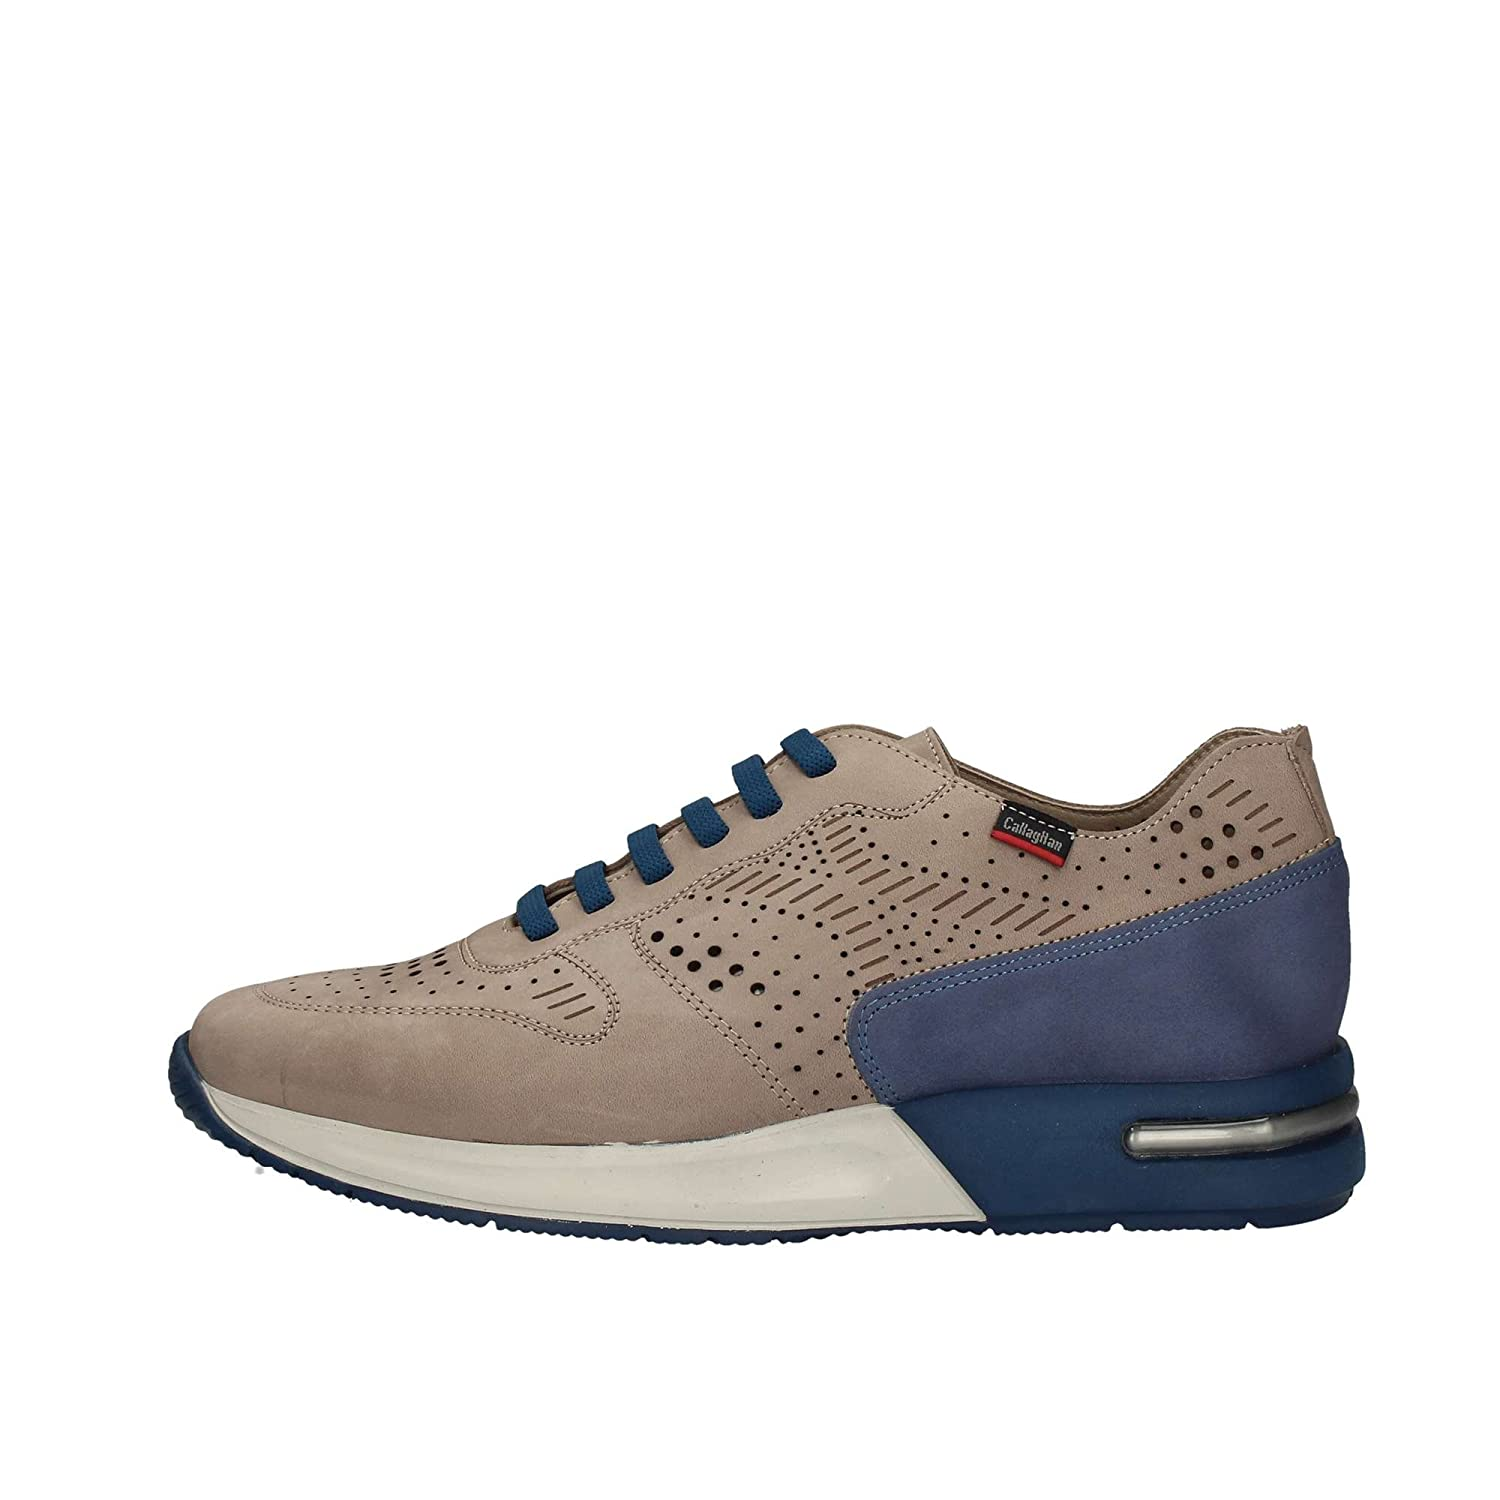 Callaghan 91306 Sneakers Hombre